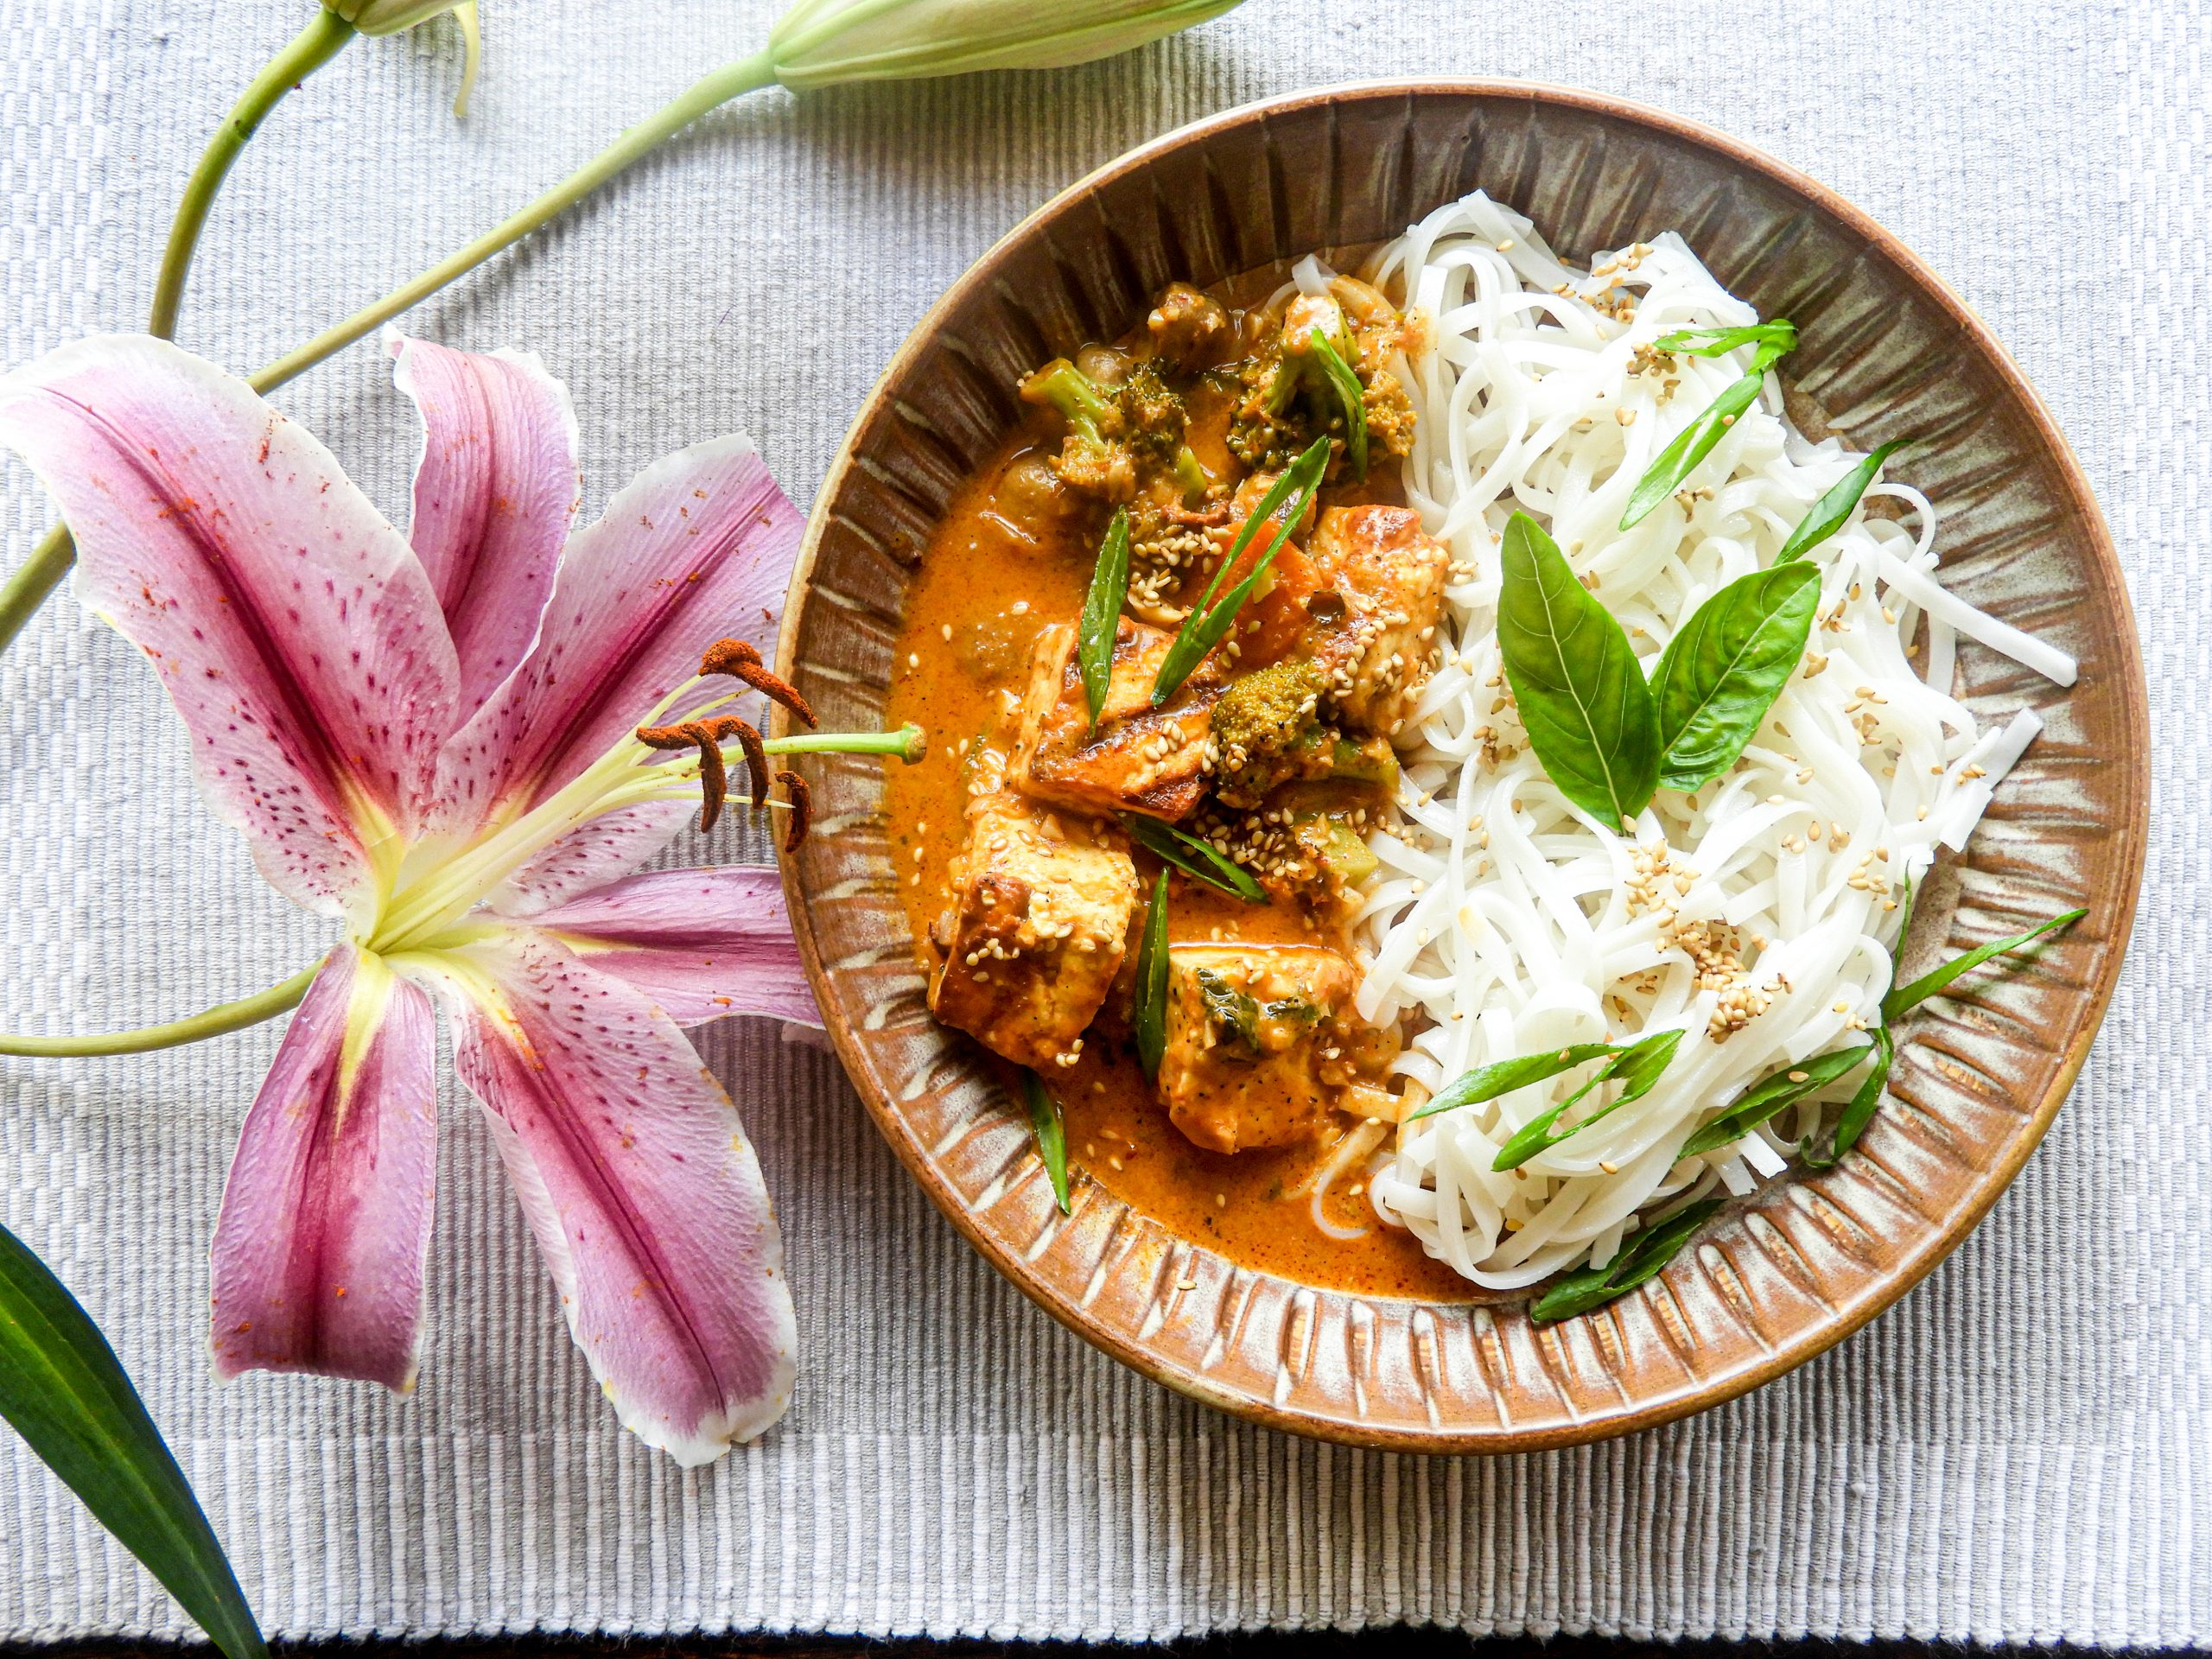 Spicy Grilled Paneer with Vegetables and Rice Noodles - Asian cuisine at Kitchen by Nidhi